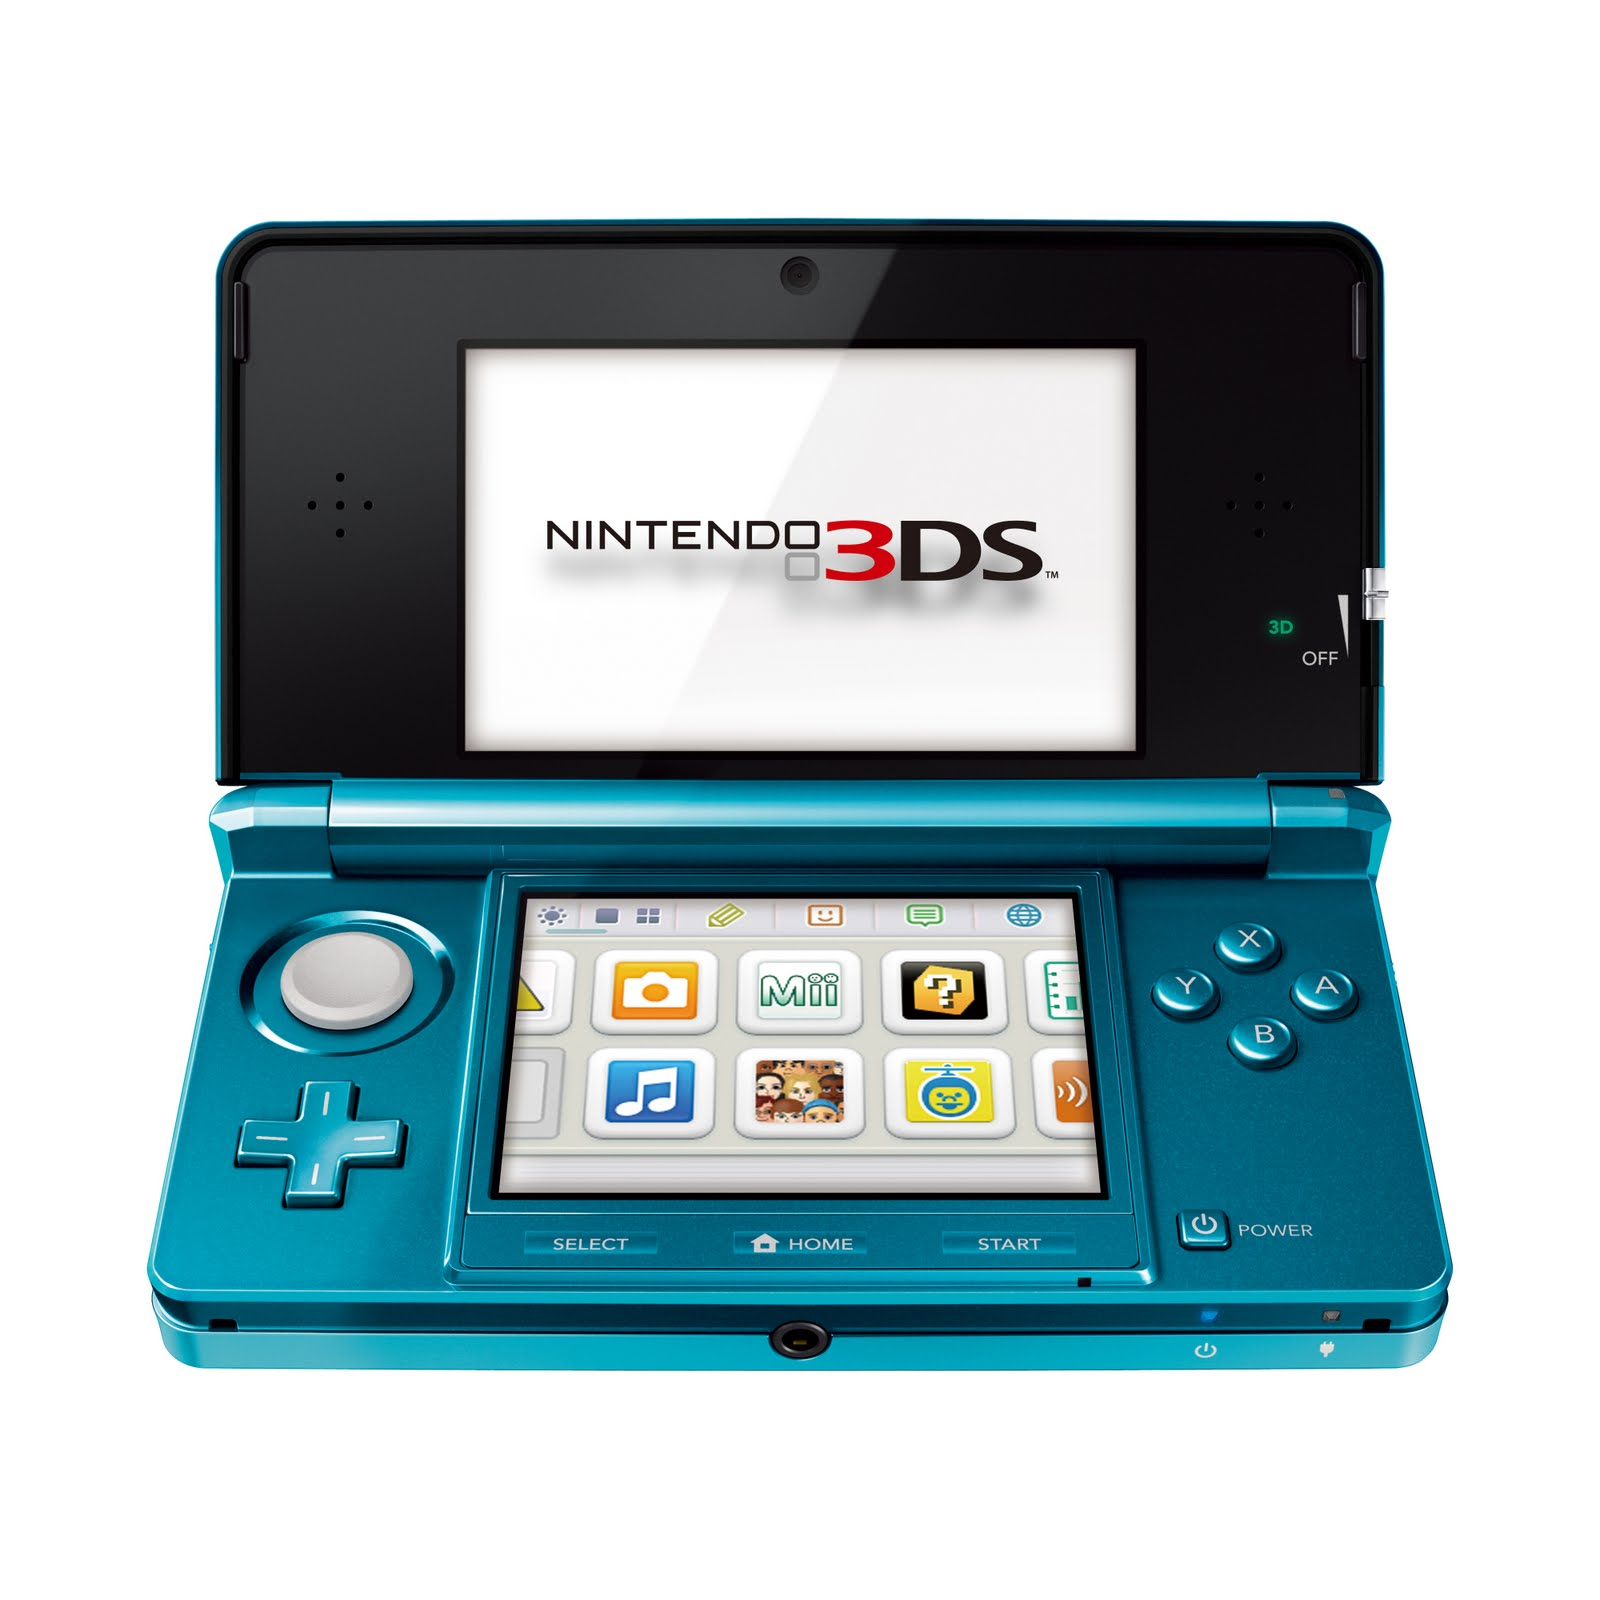 Nintendo 3ds A Hand Held Road Map Hard And Soft Gaming Ds Lite Edge Nintendos Latest Video Game Console The Is About To Hit Uks Shores So How Did We Get Here